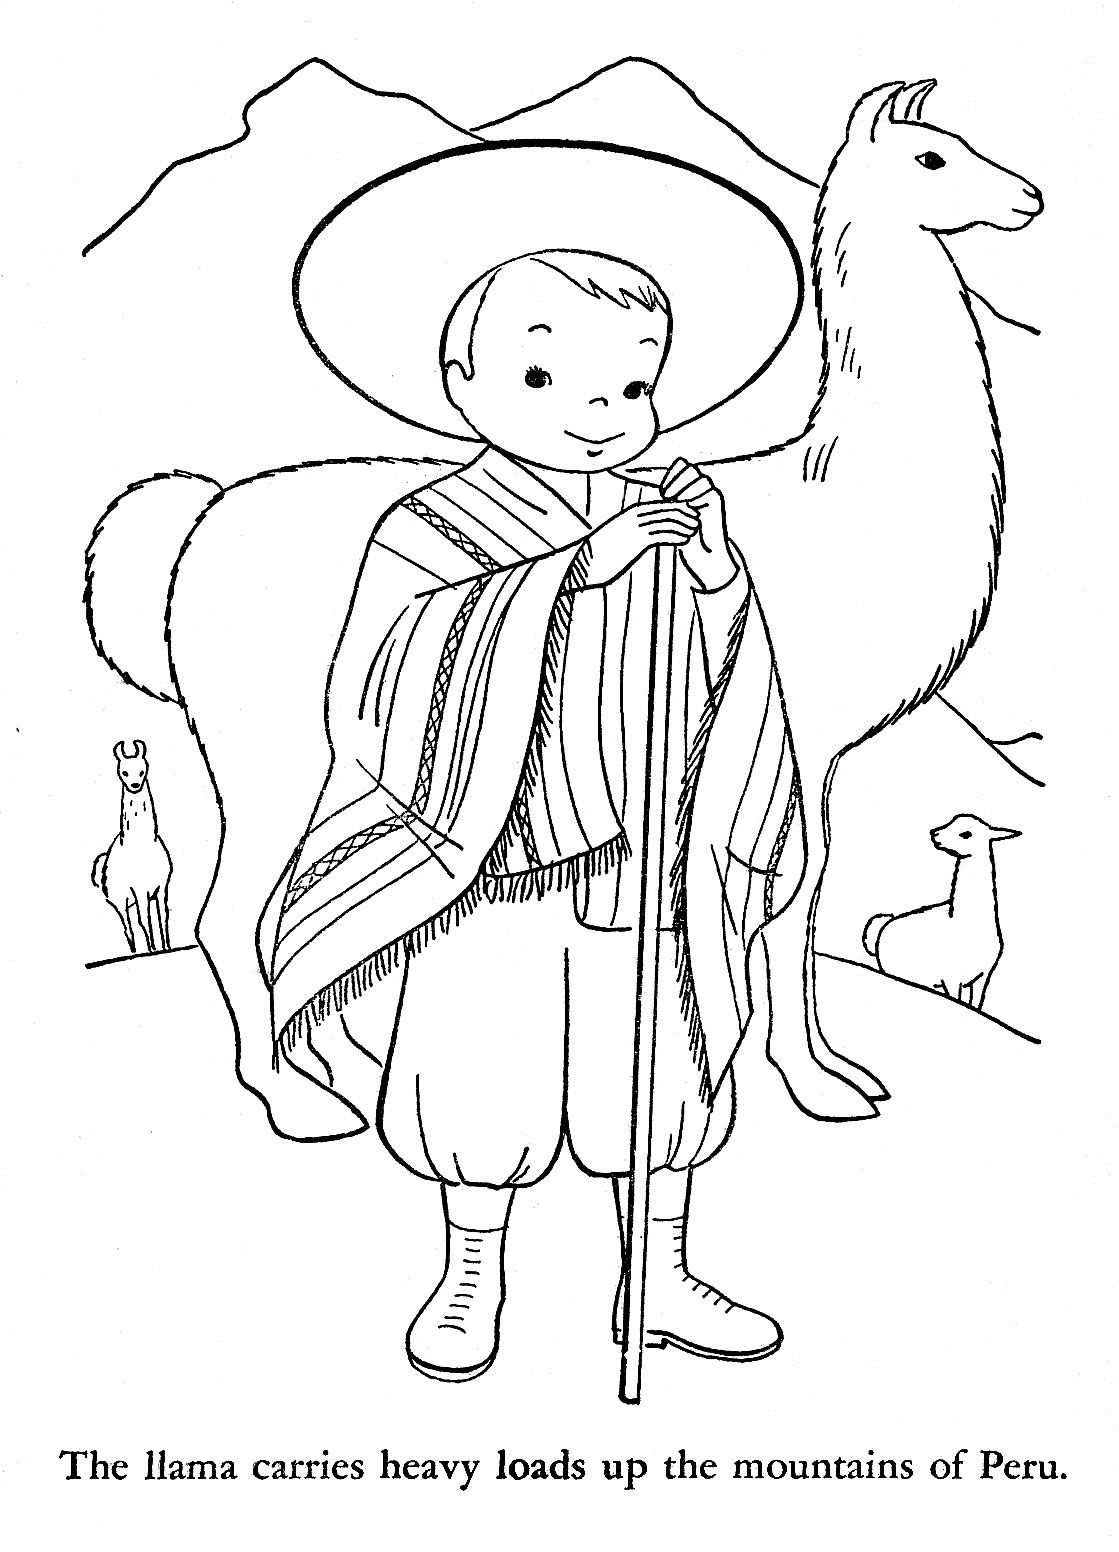 Llama Christmas Coloring Pages With How Do They Celebrate In Peru Printables